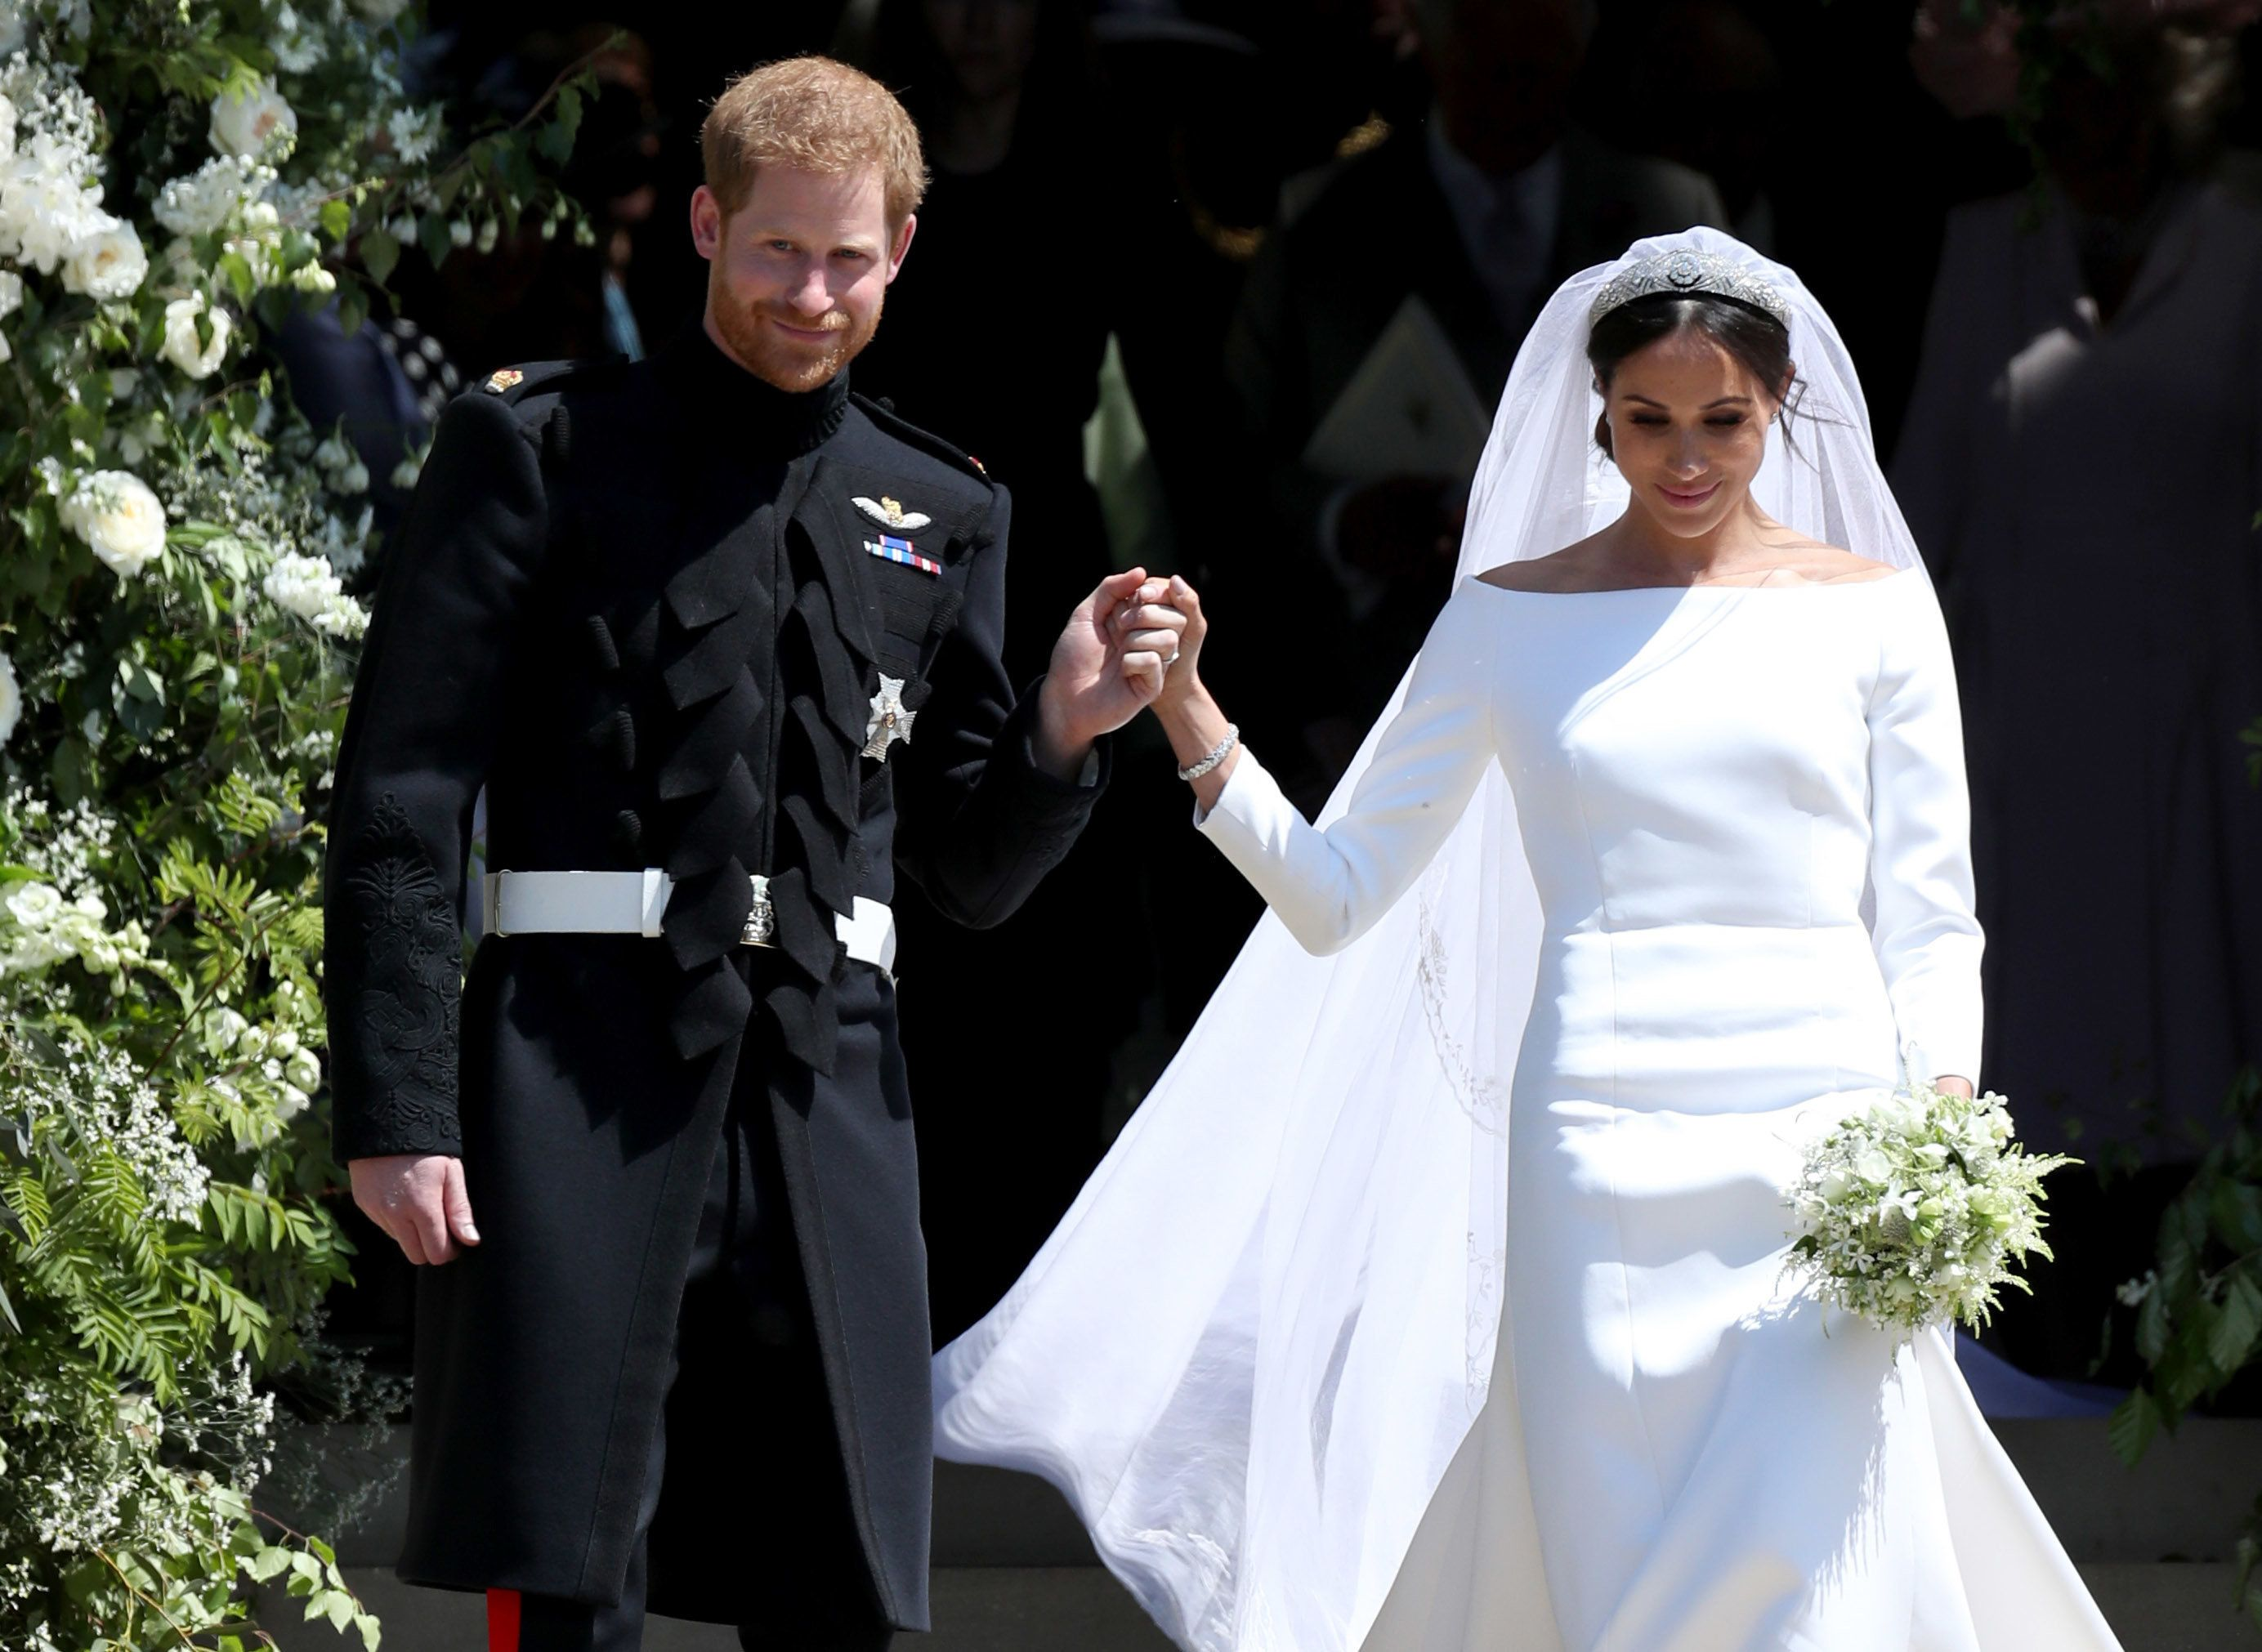 Prince Harry Duke of Sussex and Meghan Duchess of Sussex depart after their wedding ceremony at St. George's Chapel at Wi